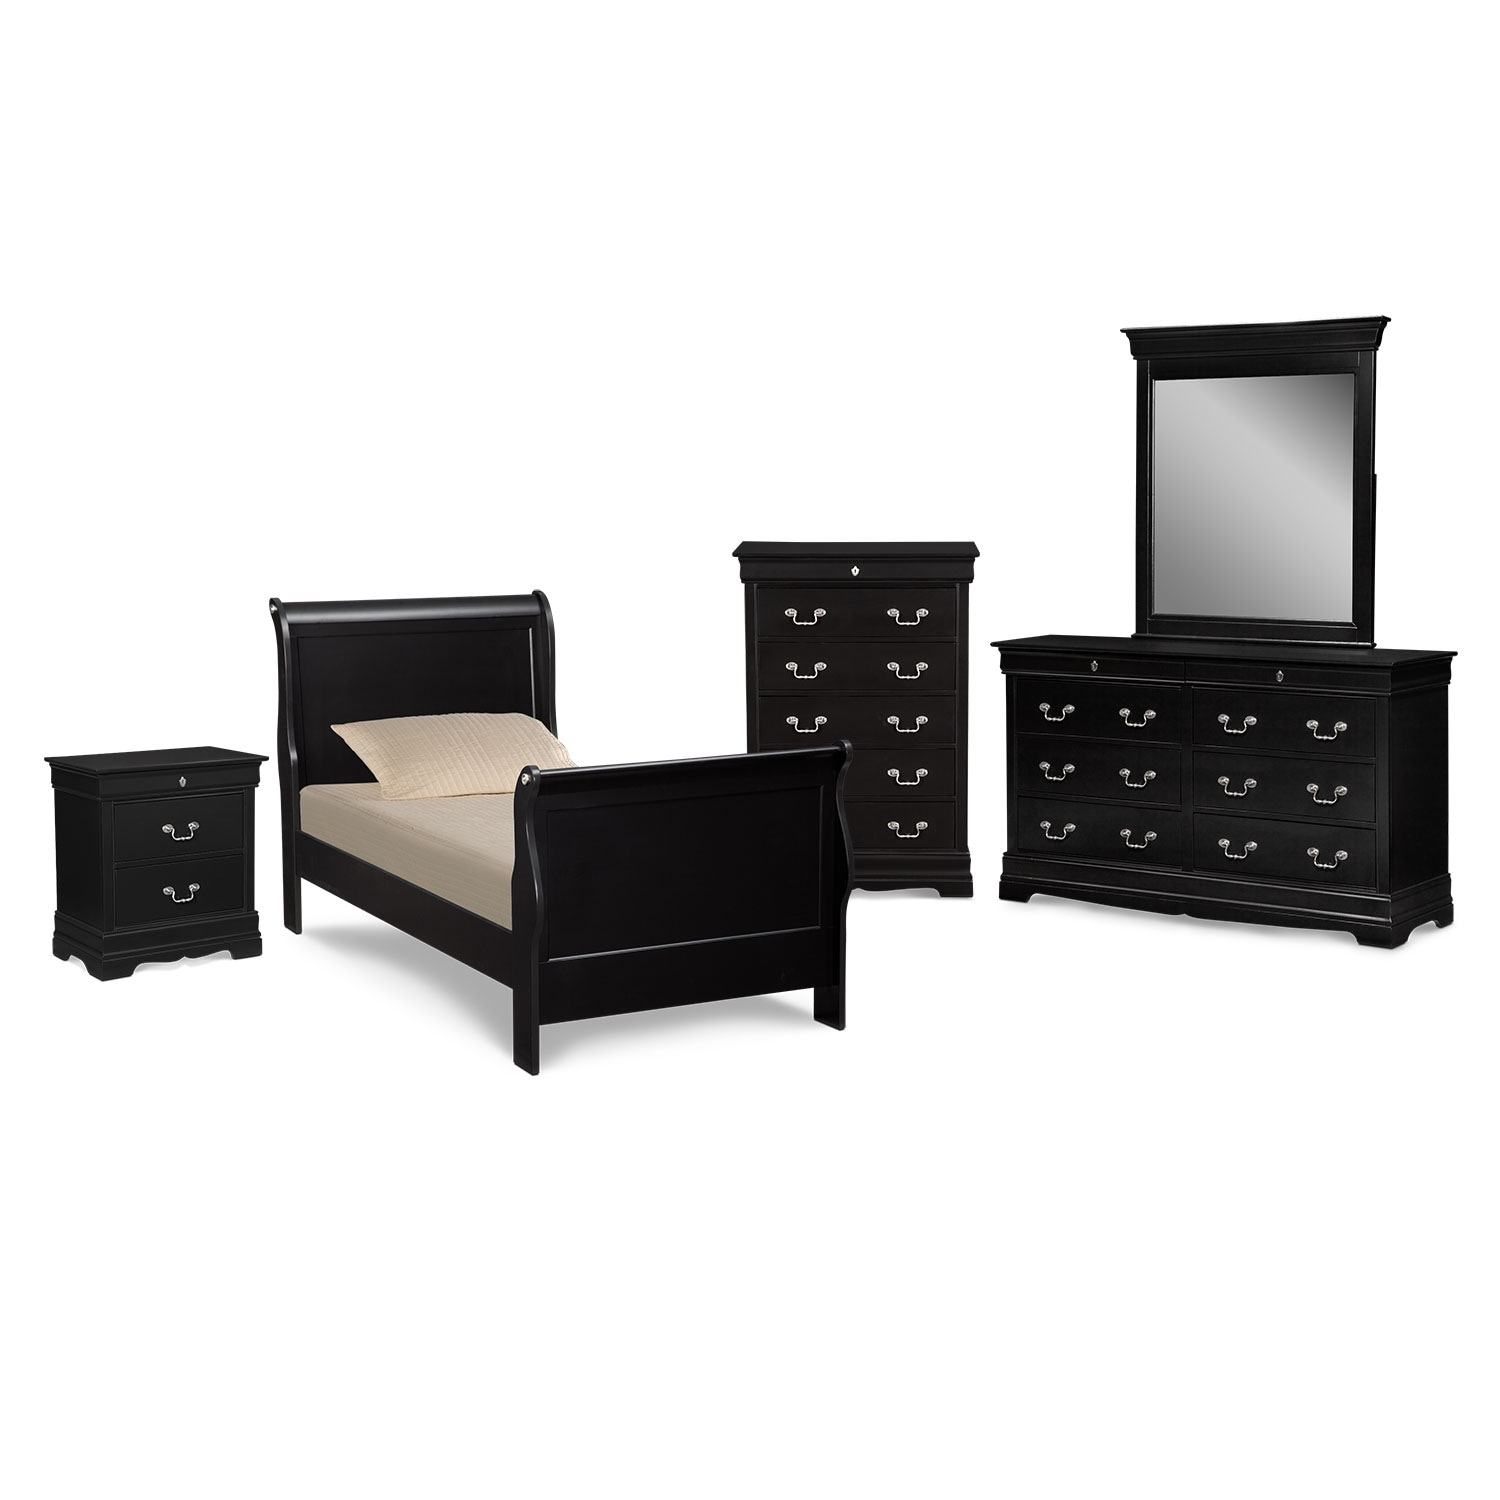 Kids Furniture - Neo Classic Youth 7-Piece Full Bedroom Set - Black